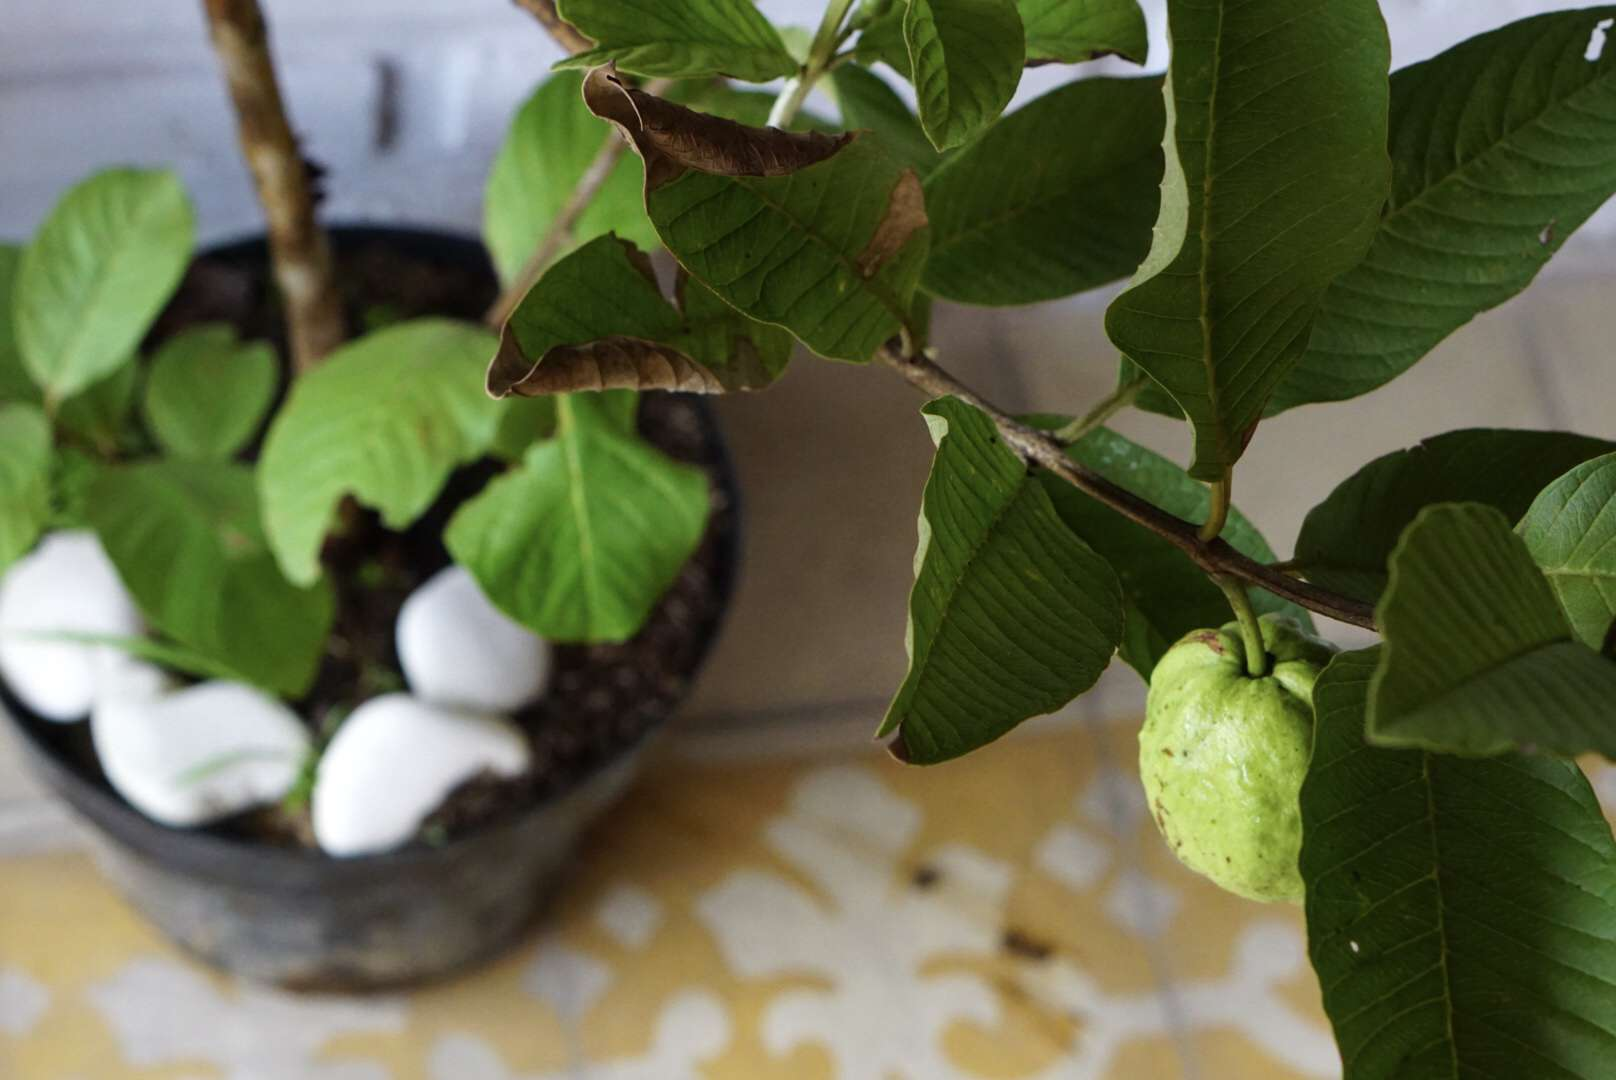 Guava plant in pot with guava fruit hanging below branch